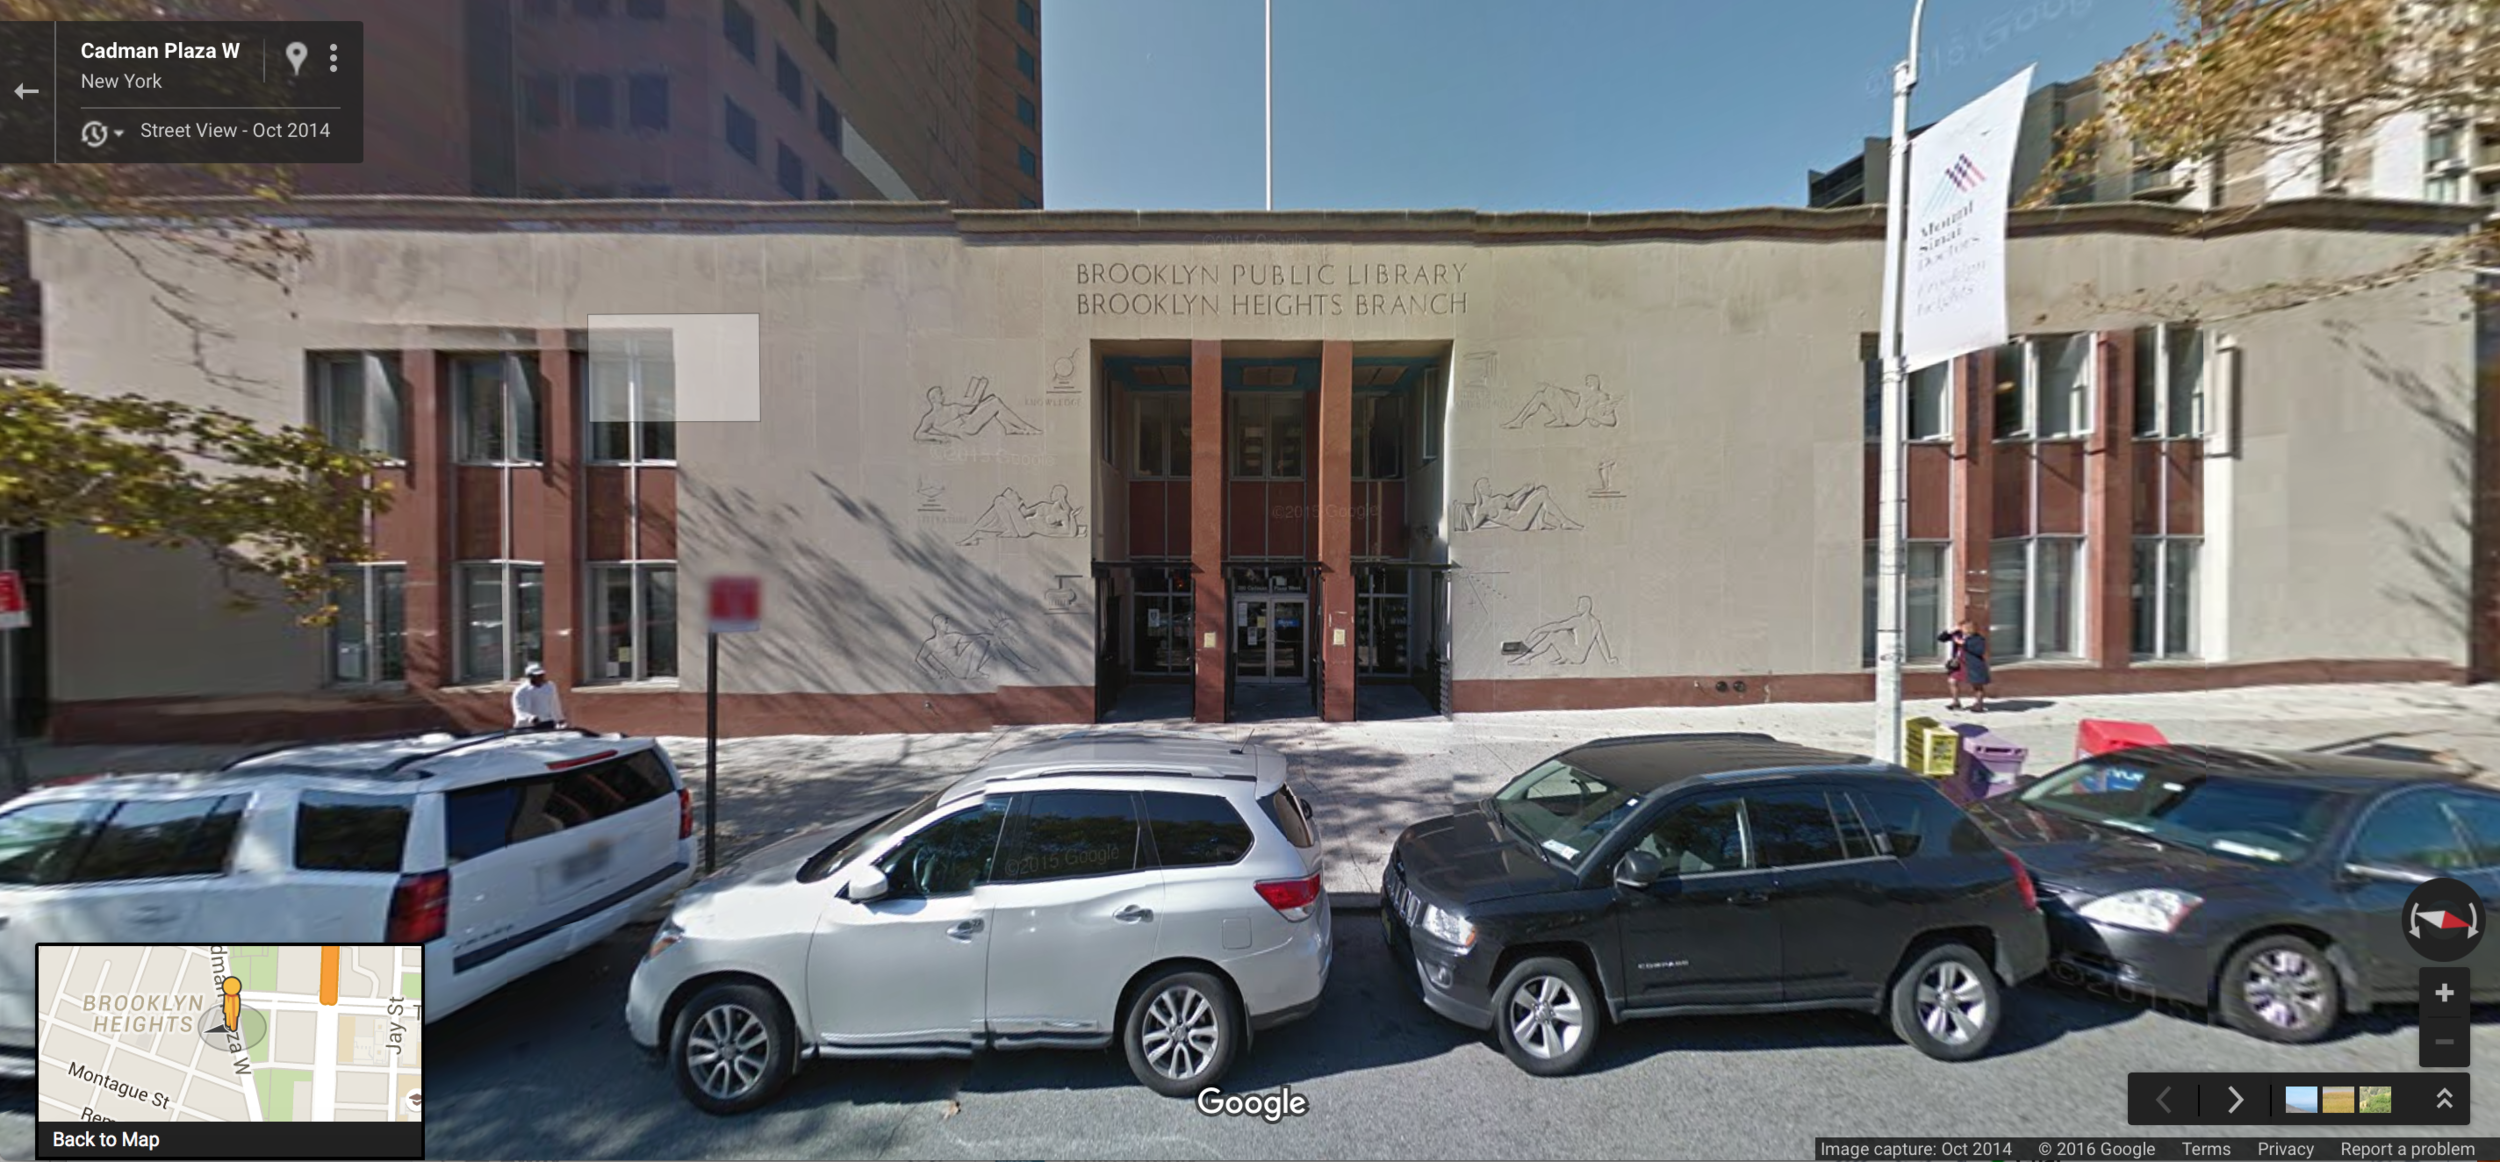 The Brooklyn Heights library branch of the Brooklyn Public Library, as seen in October 2014. The library branch faces Cadman Plaza Park, and across the quiet park are situated two Federal office buildings housing each of the U.S. District Court House and the U.S. Attorney's Office, each for New York's eastern district. Source :  Google Street View